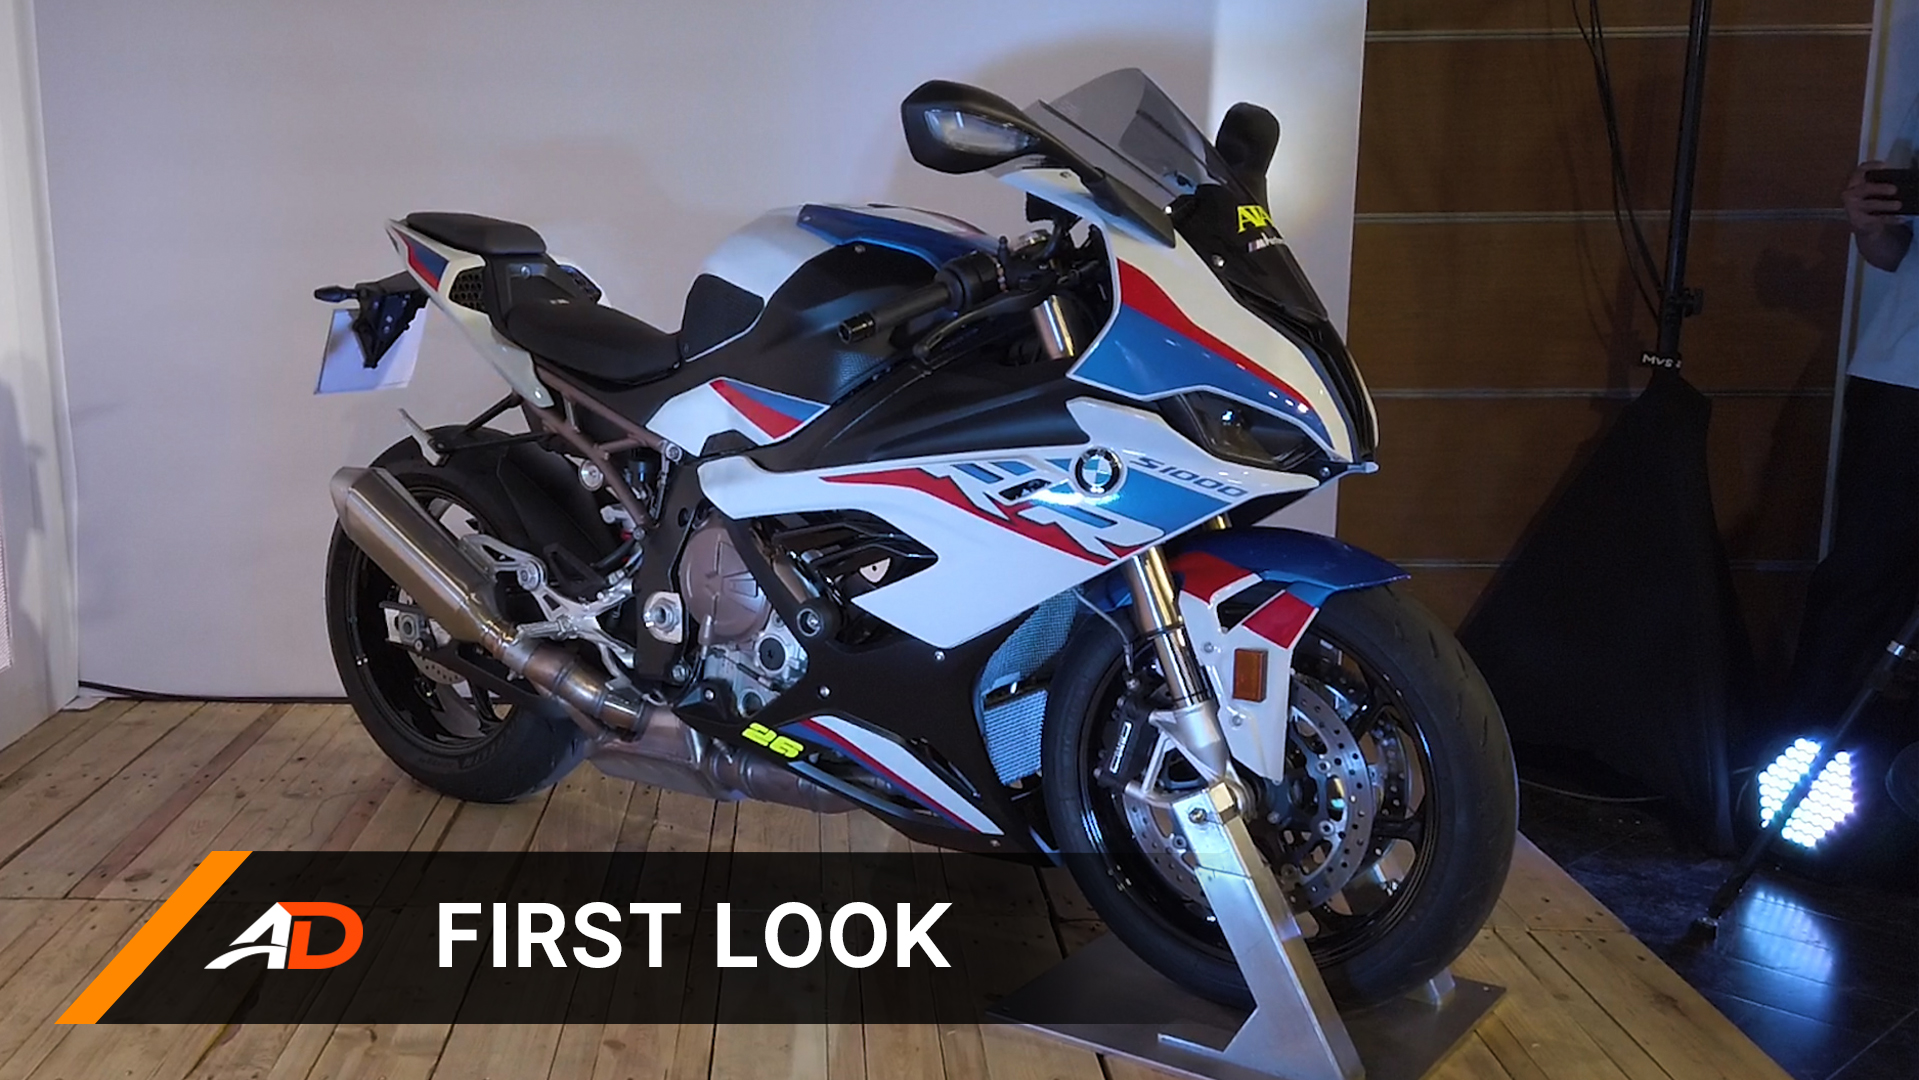 Bmw S1000rr For Sale >> 2020 BMW S1000RR M Sport - First Look | Autodeal